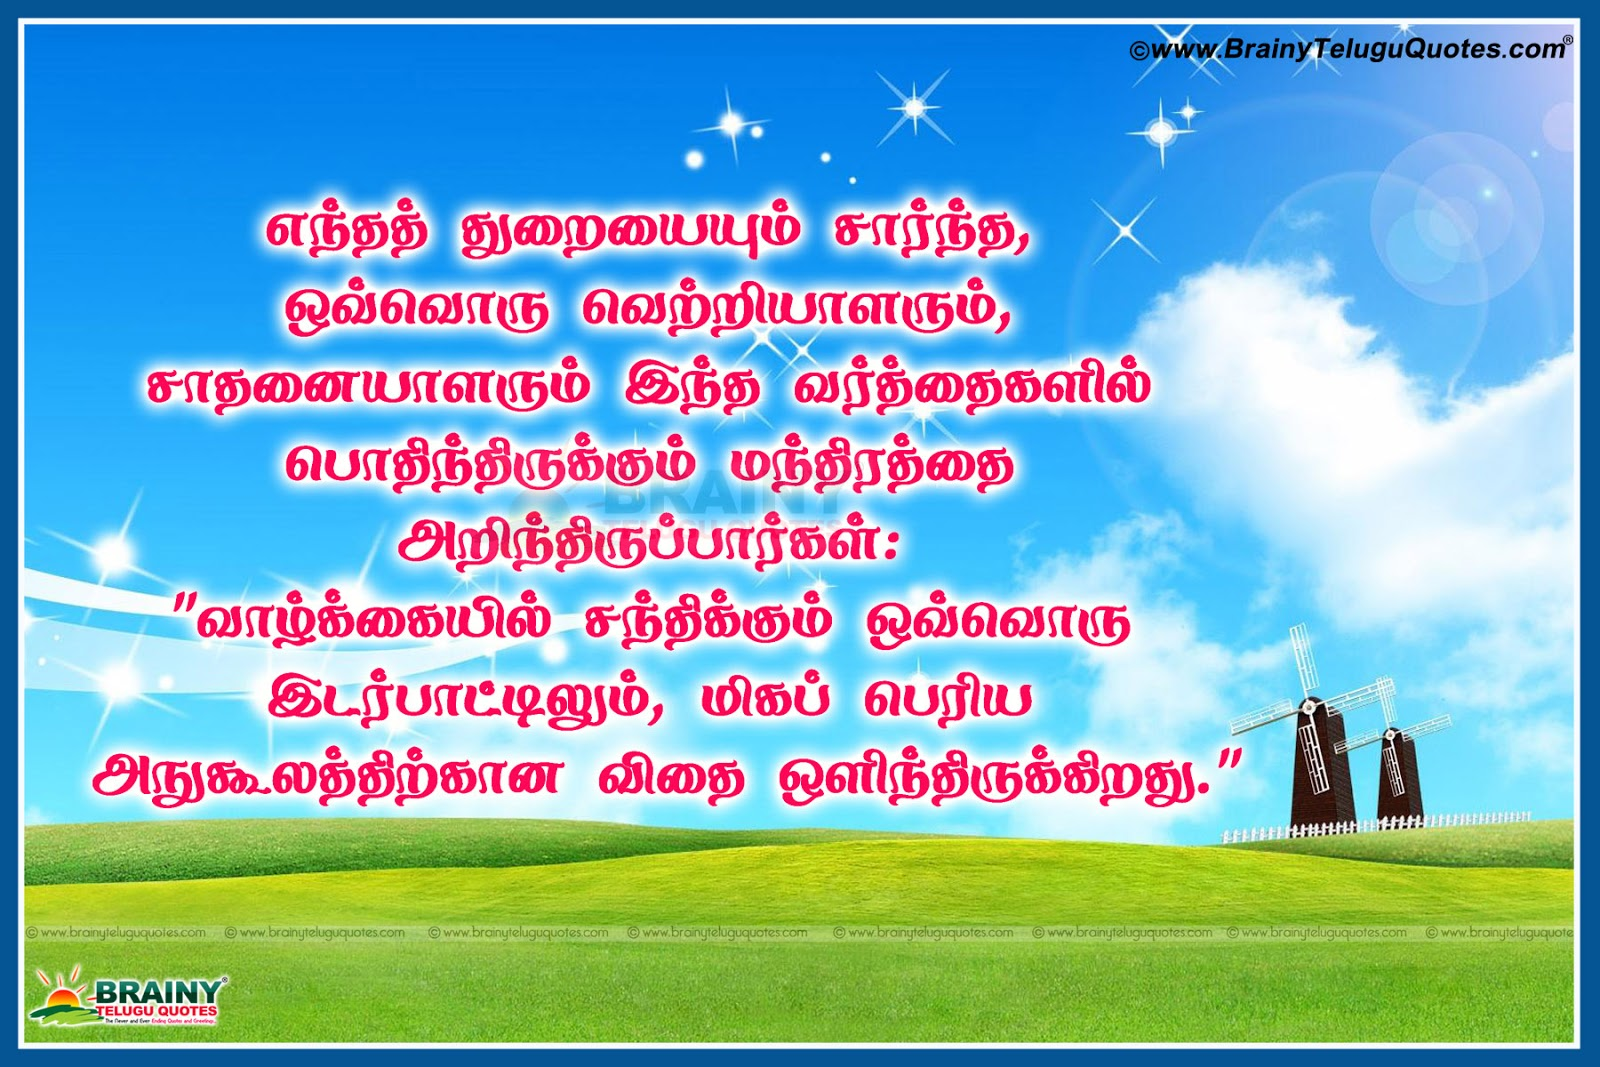 Tamil Good Morning Greetings With Life Goal Kavithai Brainyteluguquotes Comtelugu Quotes English Quotes Hindi Quotes Tamil Quotes Greetings